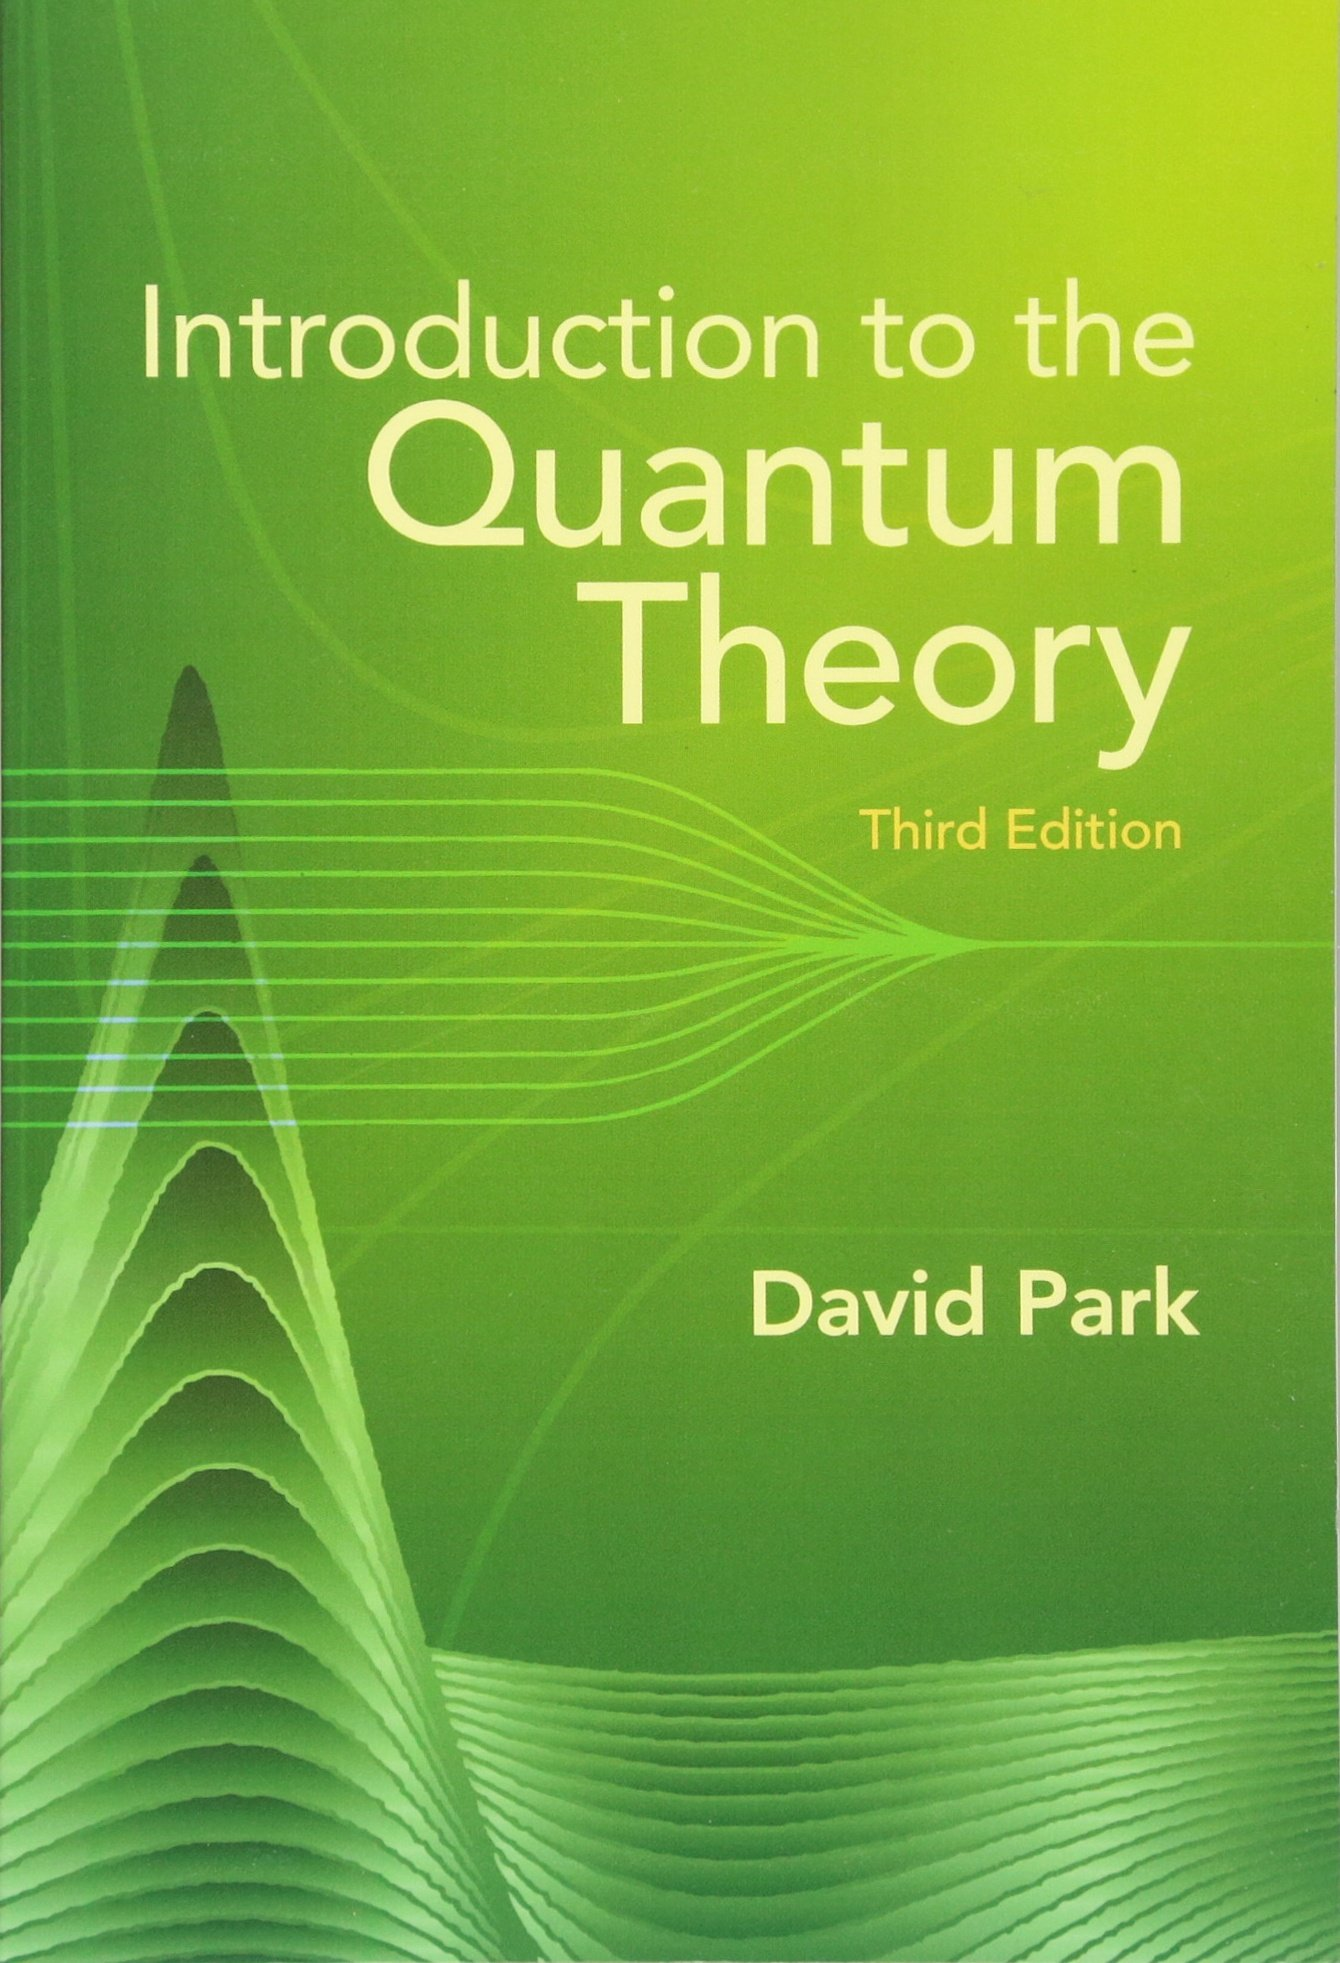 Introduction to the quantum theory third edition dover books on introduction to the quantum theory third edition dover books on physics david park physics 9780486441375 amazon books fandeluxe Gallery